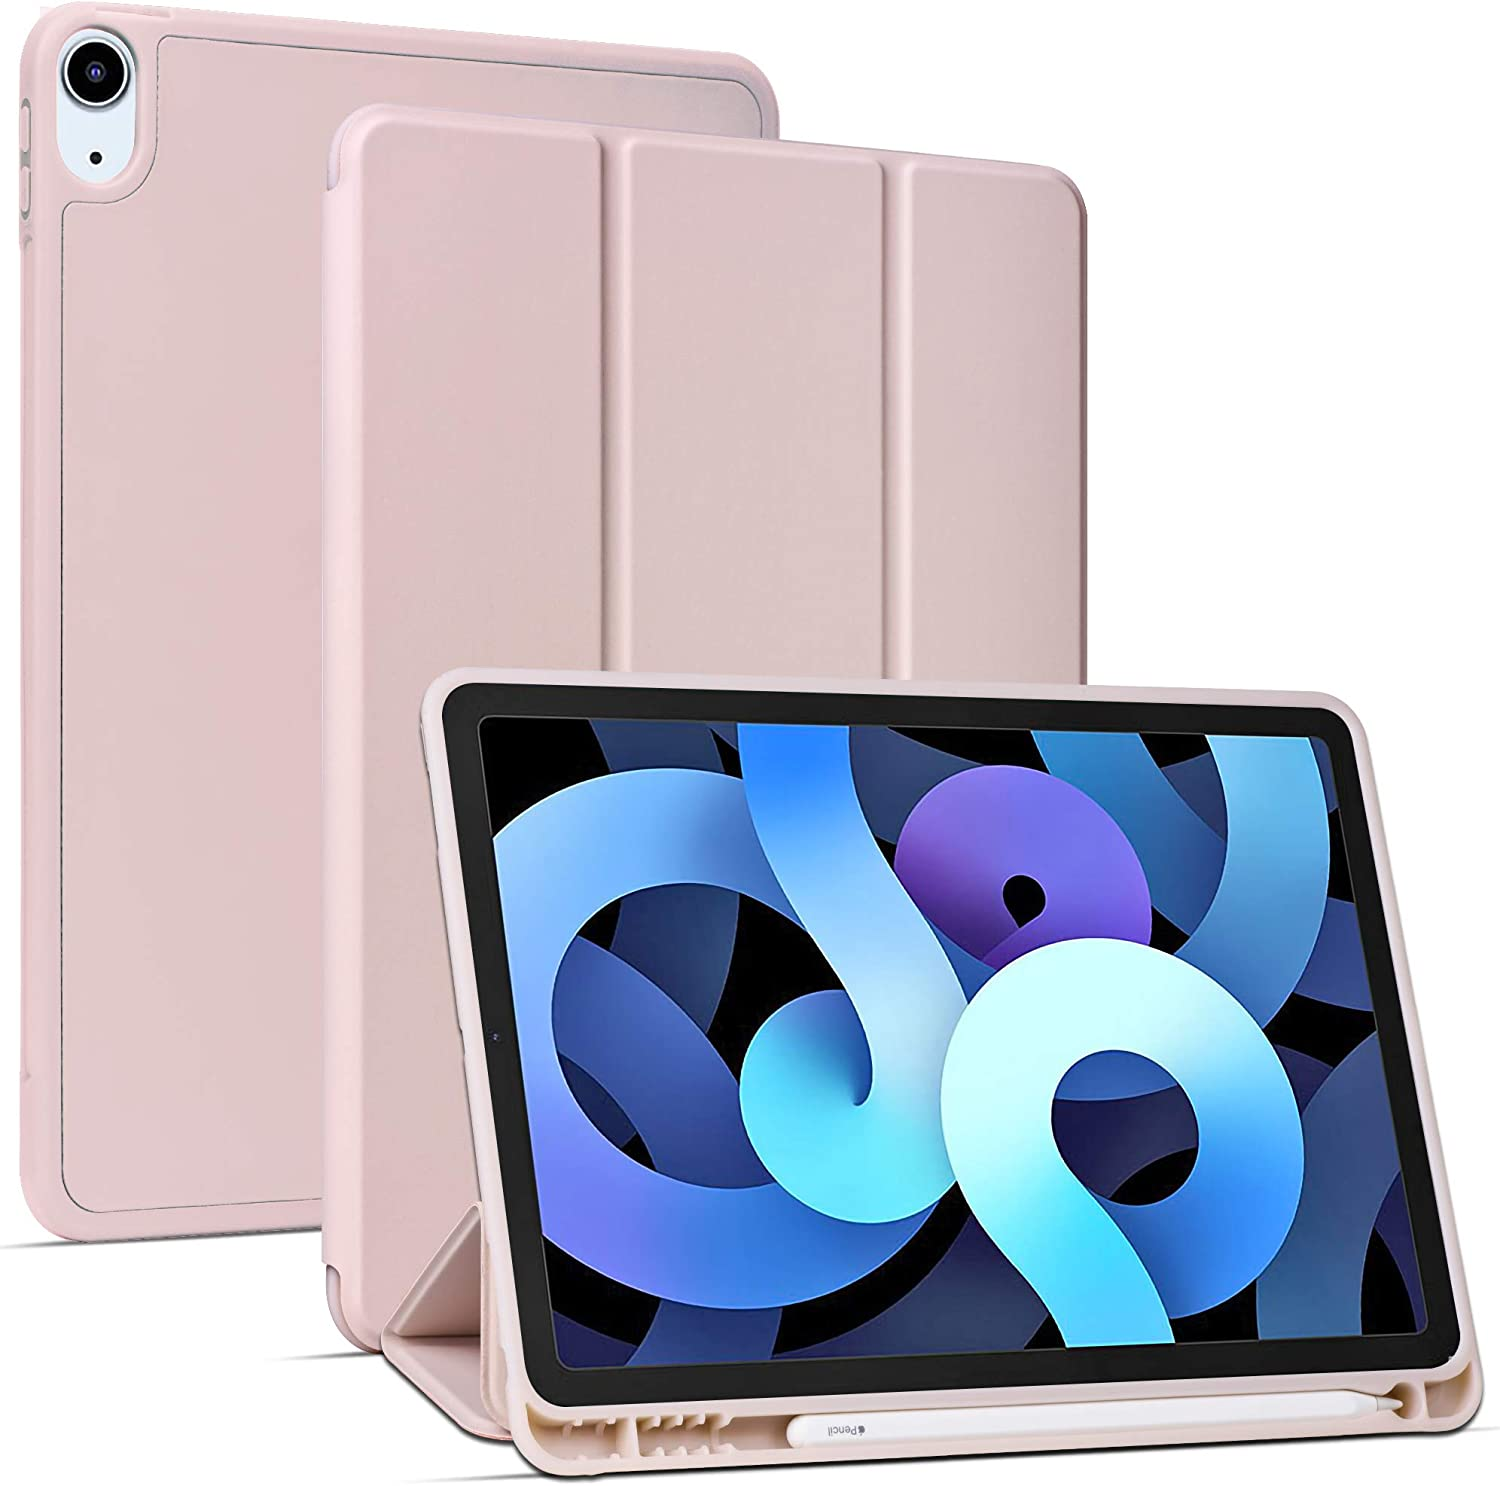 Arae for iPad Air 4 Generation 10.9 Case (2020) Auto Wake / Sleep Feature Standing Cover, Rosegold